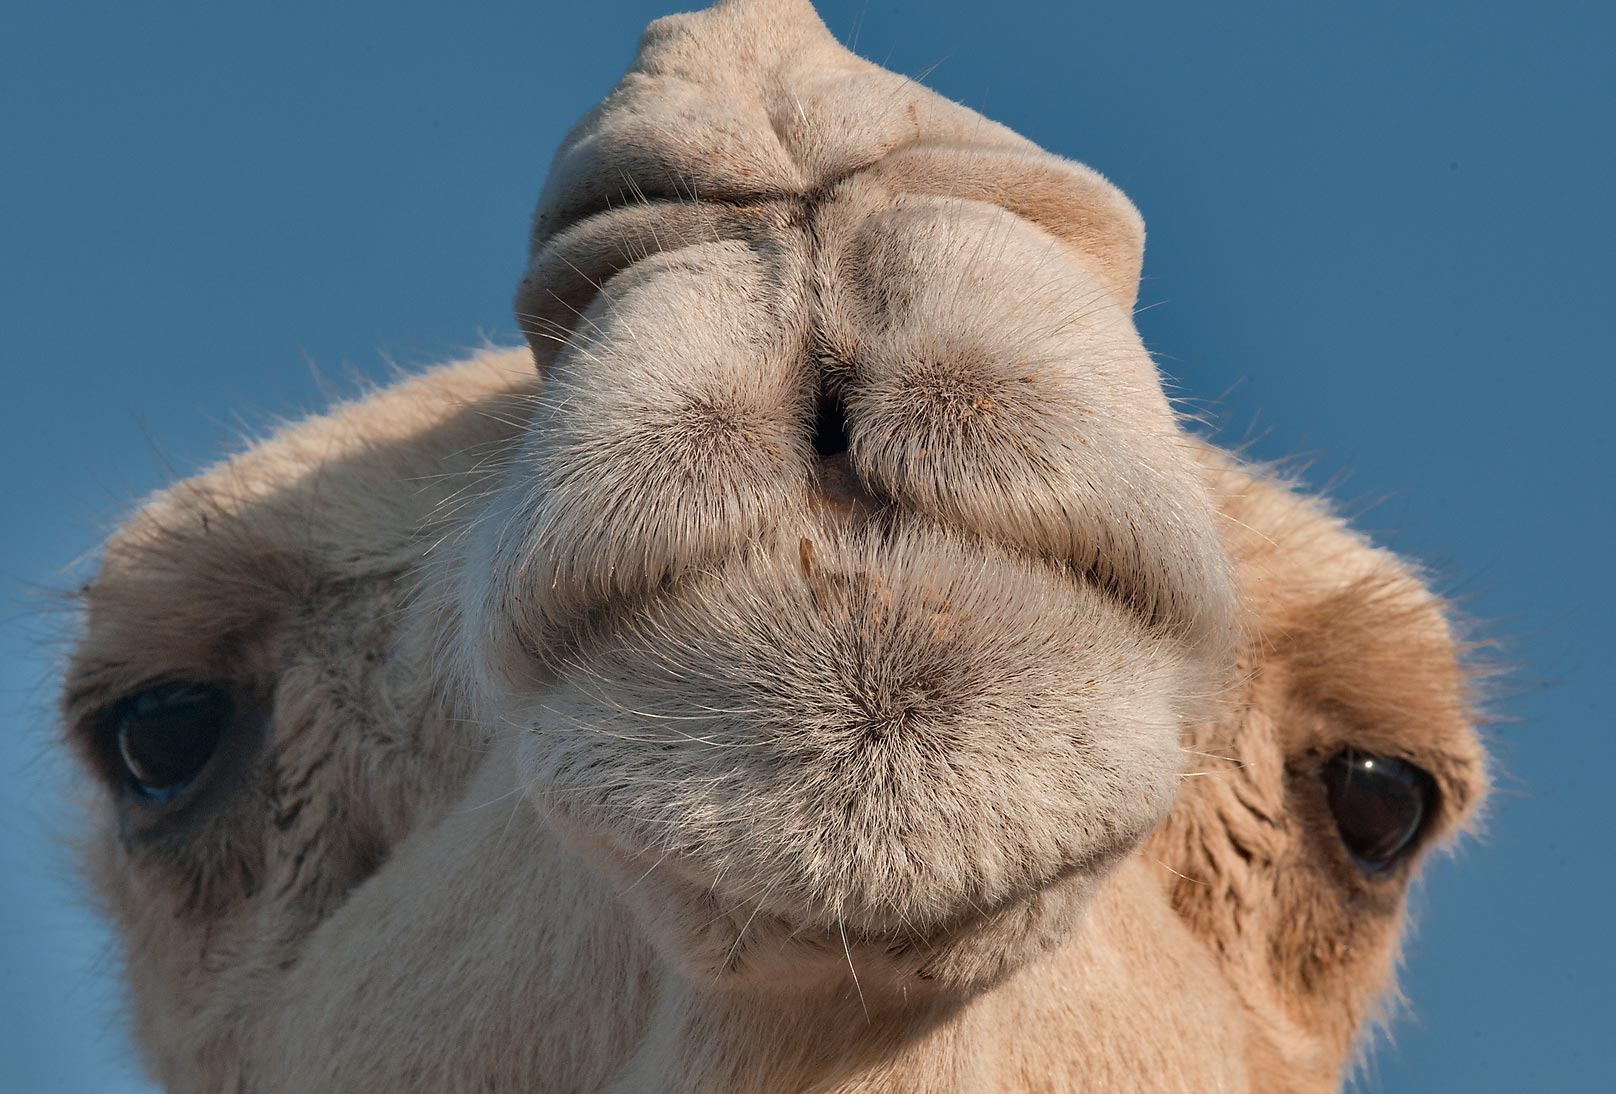 Snout of a white camel in Camel Market (Souq), Wholesale Markets area. Doha, Qatar